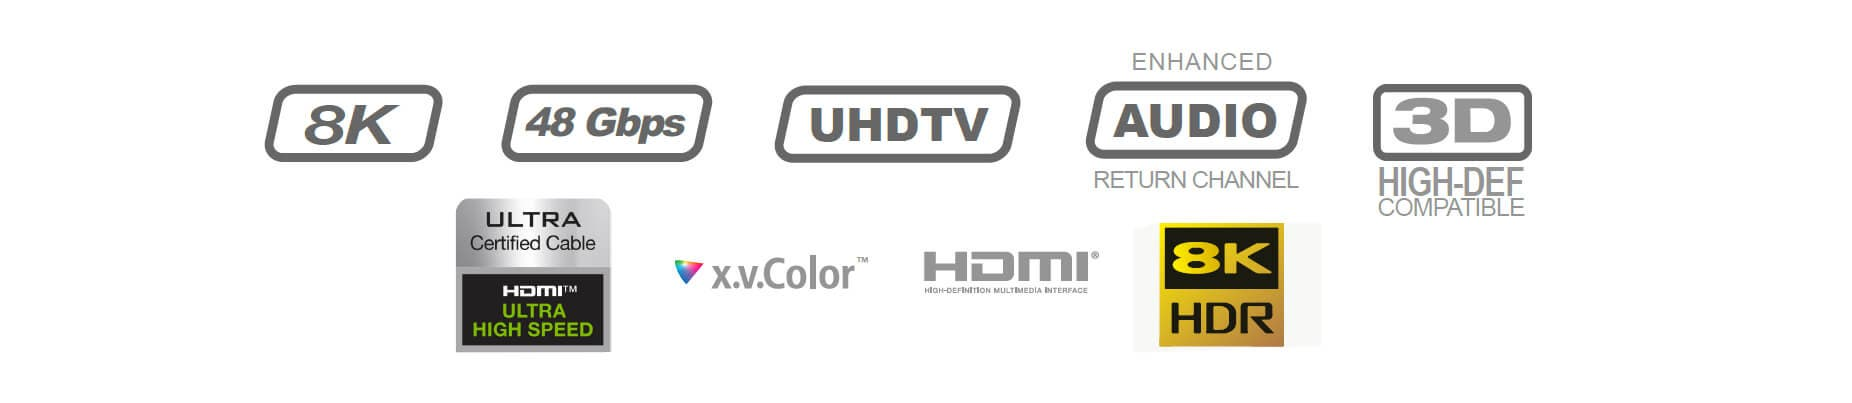 8K Braided Ultra High Speed HDMI Cable